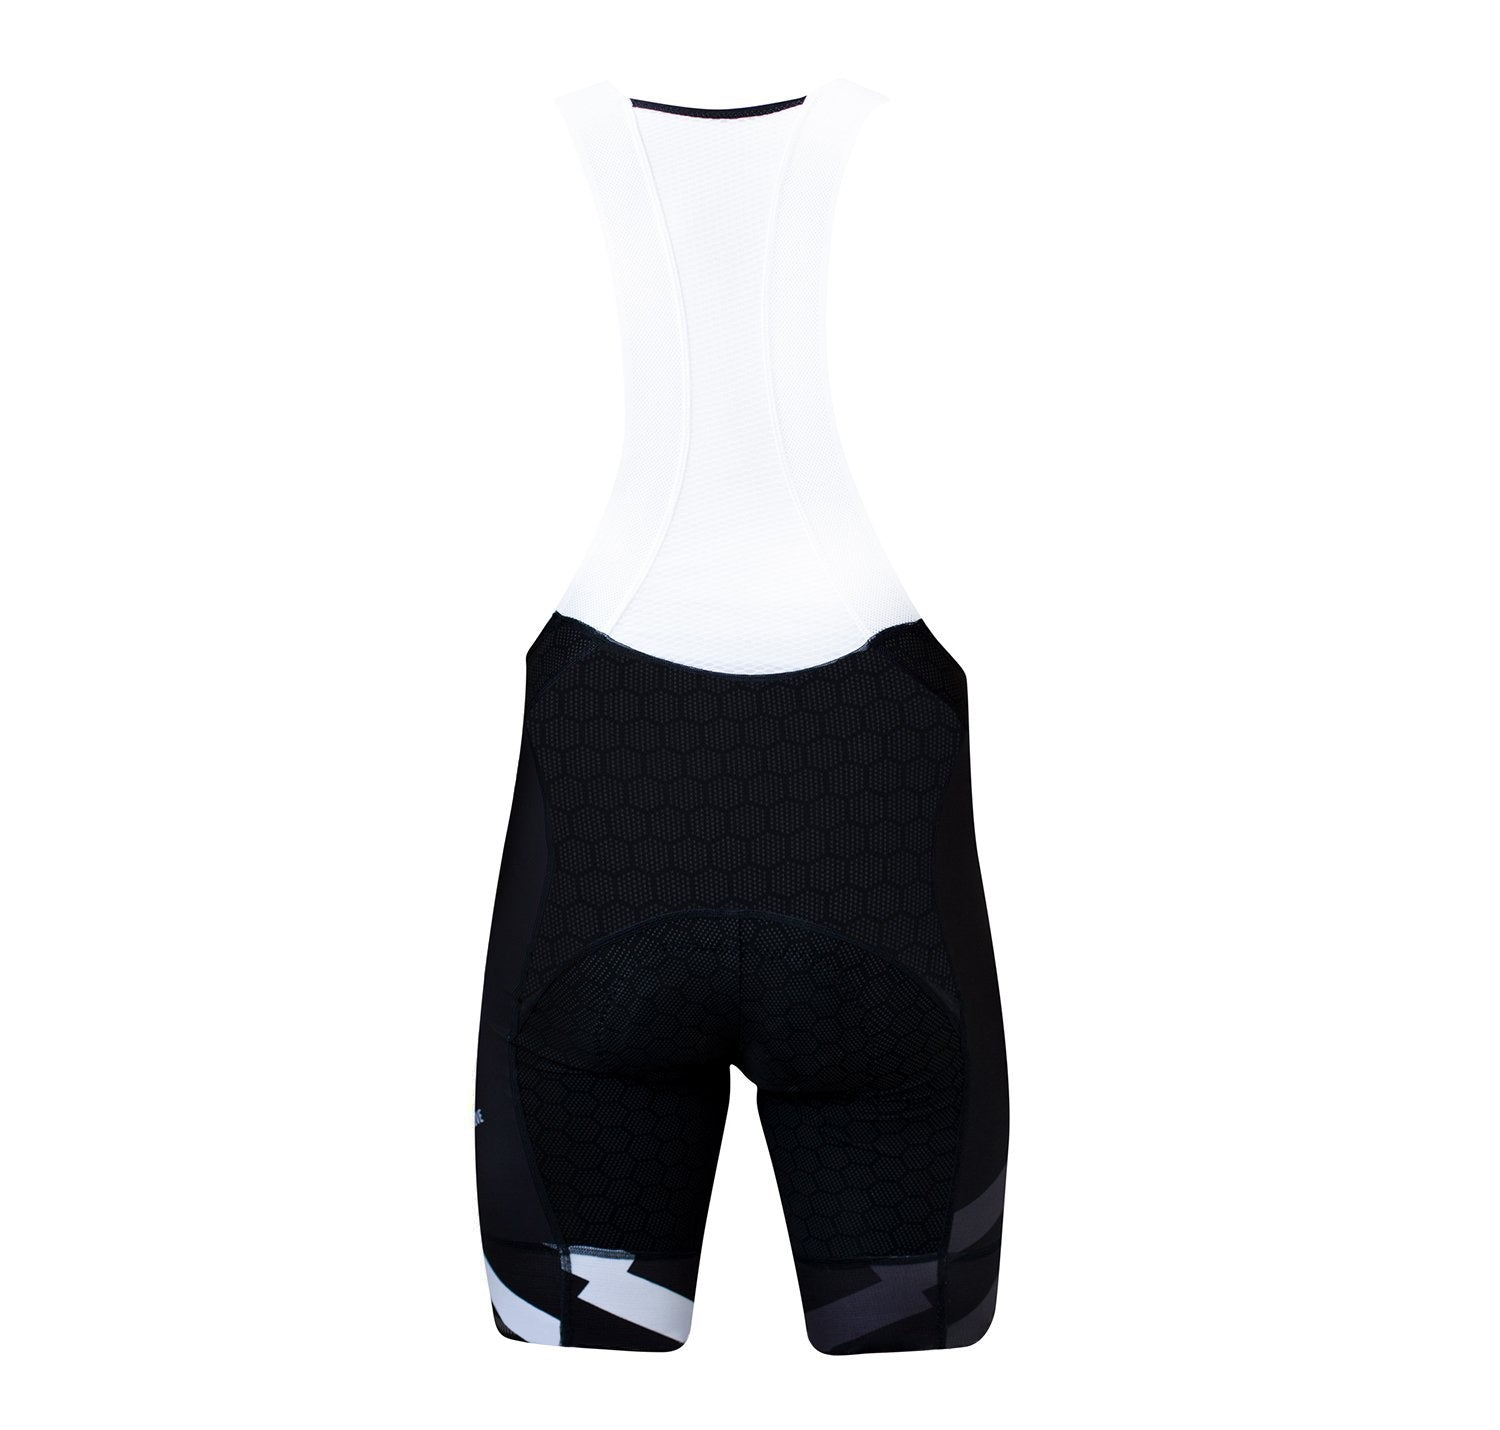 JML Japan Shorts - Jerseys Made with Love